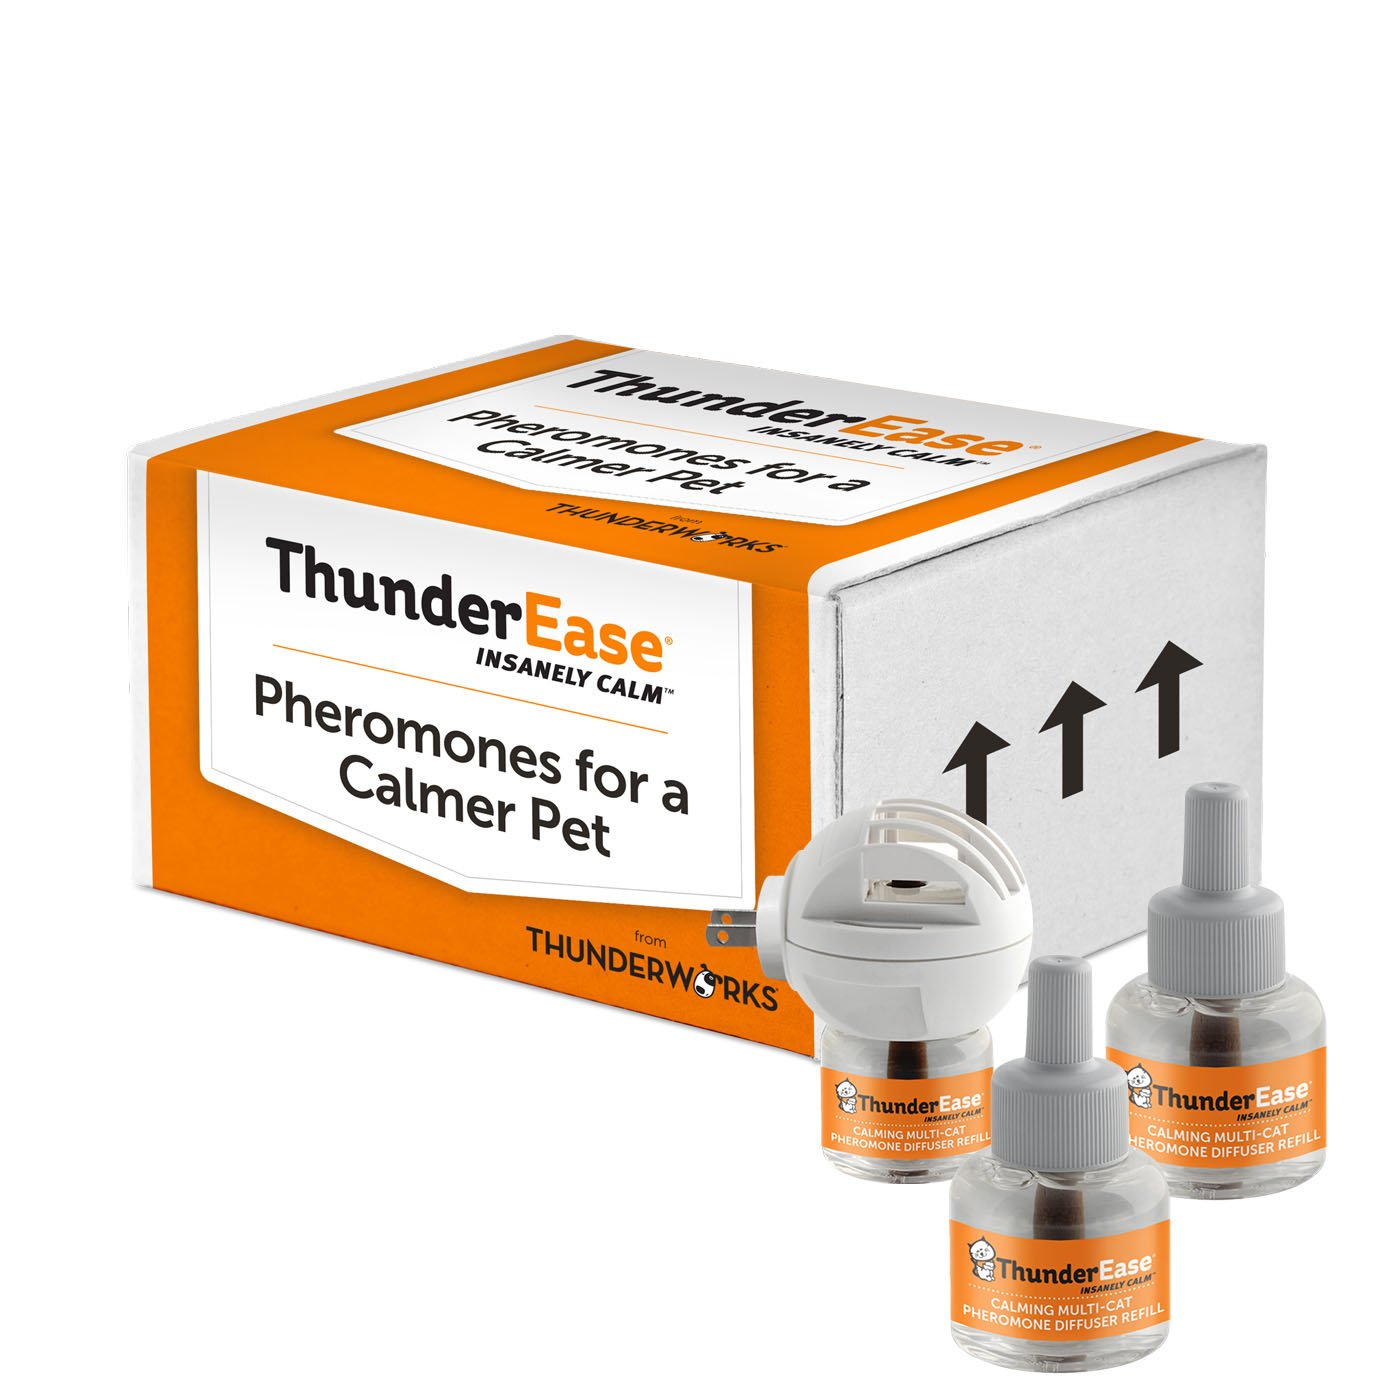 ThunderEase Multicat Calming Pheromone Diffuser Kit | Powered by FELIWAY | Reduce Cat Conflict, Tension and Fighting (90 Day Supply) by ThunderEase